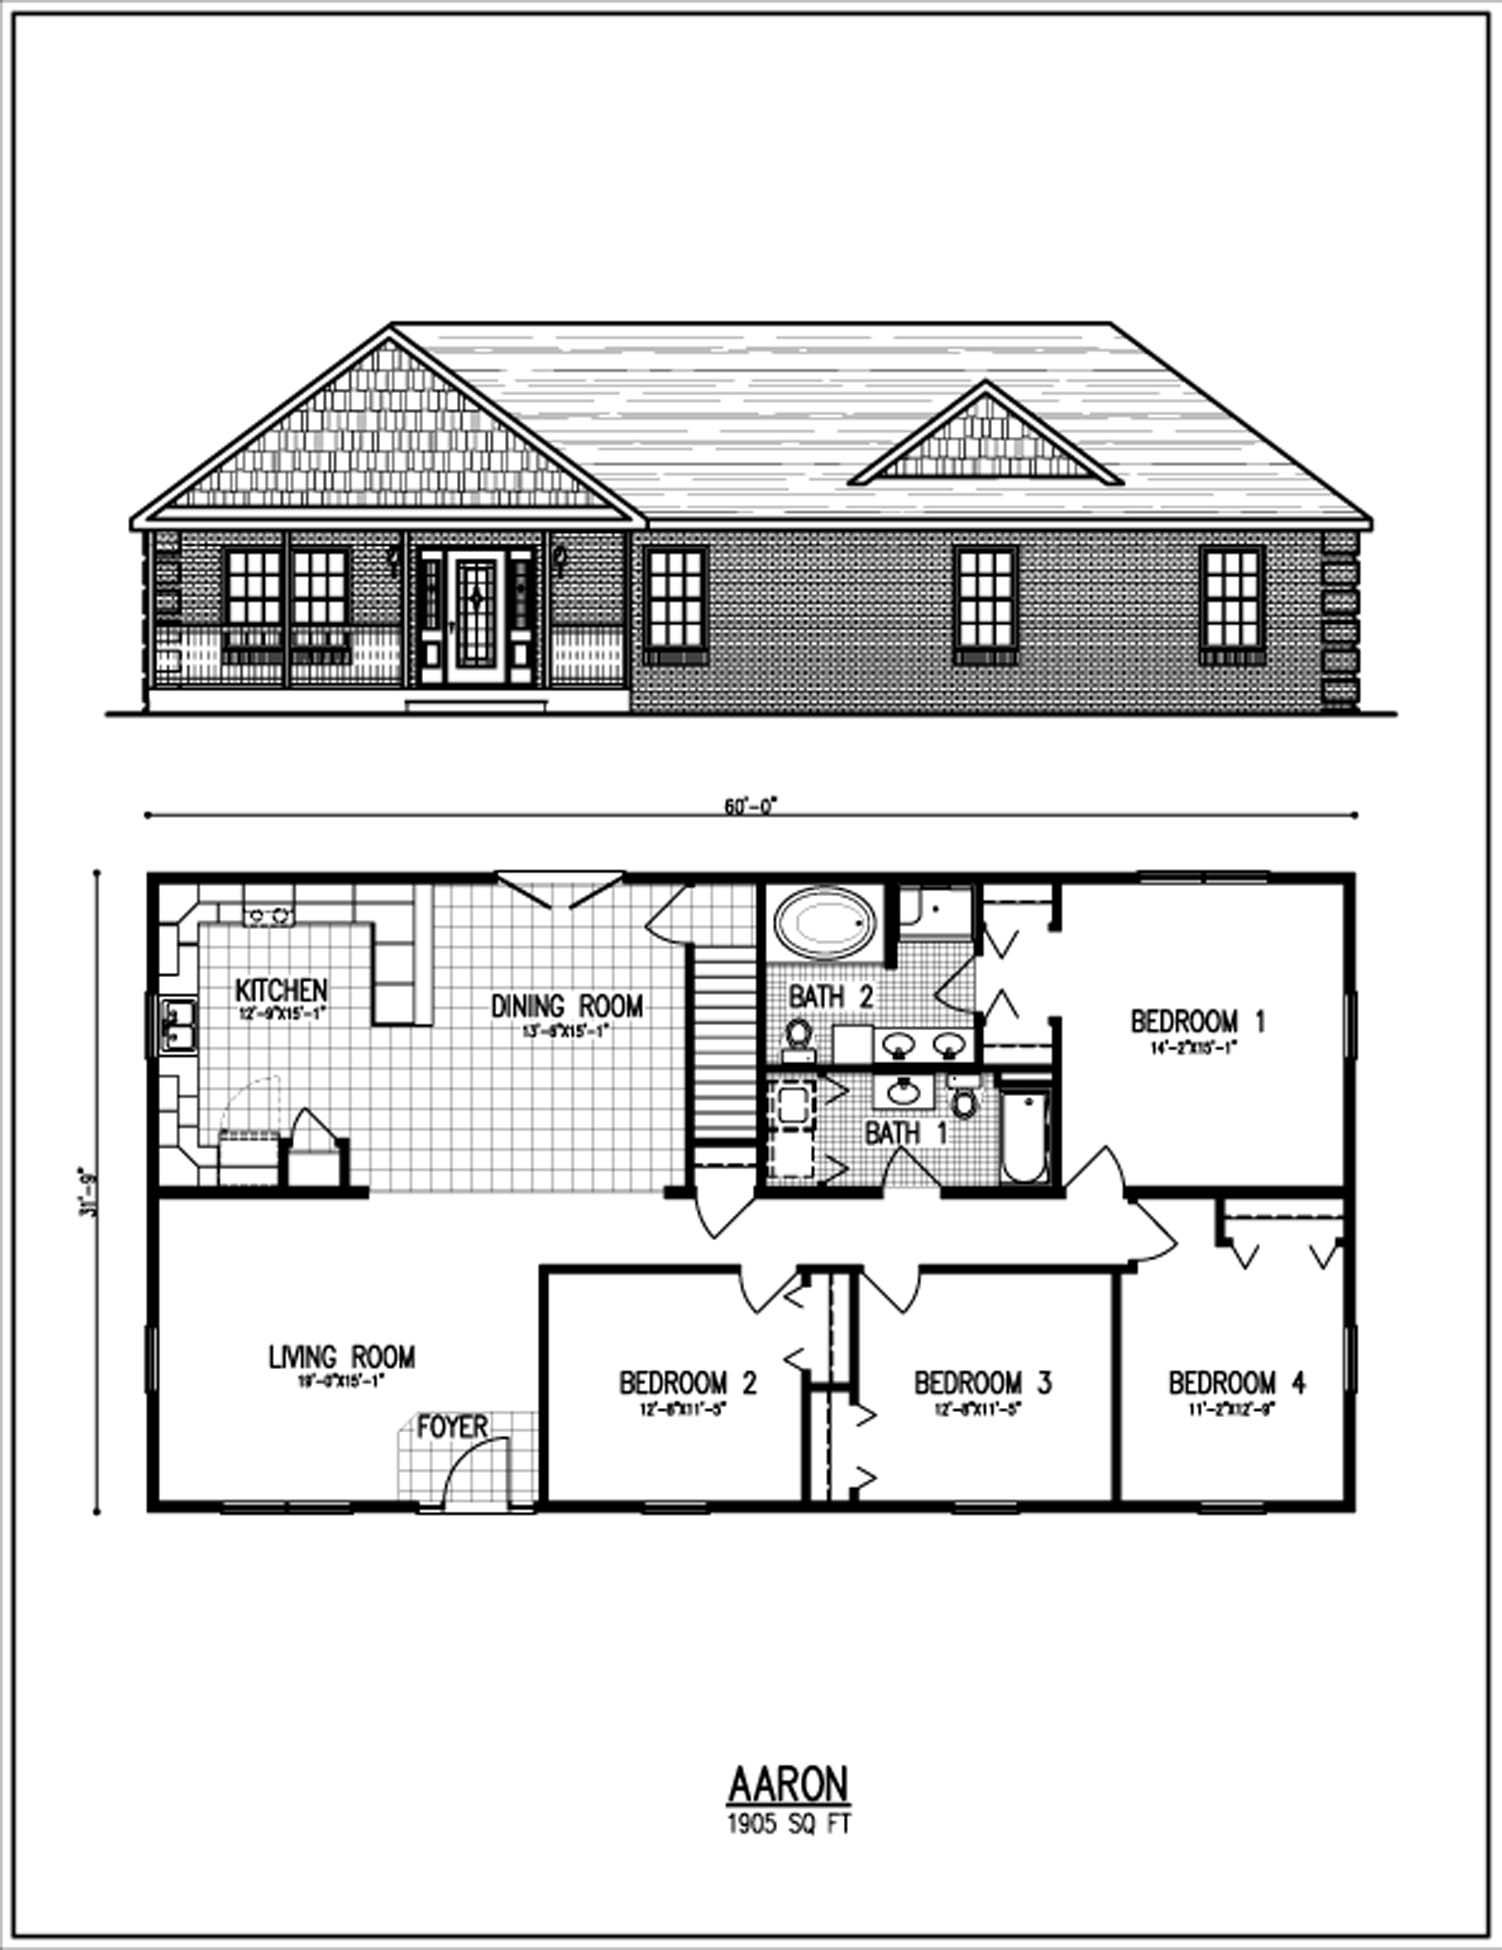 ranch style house plans - Ranch Style House Plans